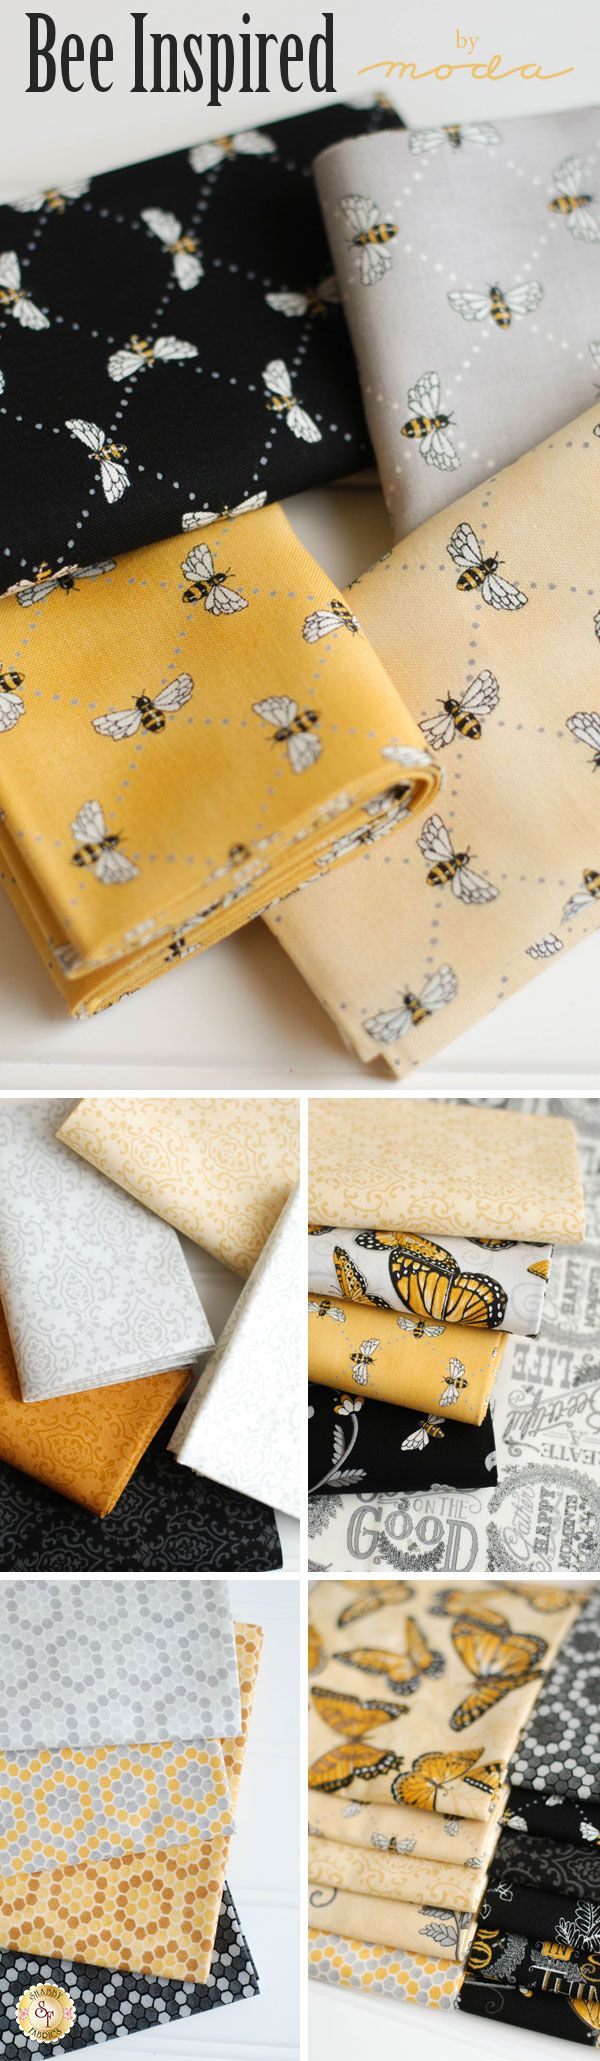 White apron joann fabrics - Bee Inspired Is A Beautiful Nature Inspired Collection By Deb Strain For Moda Fabrics Available At